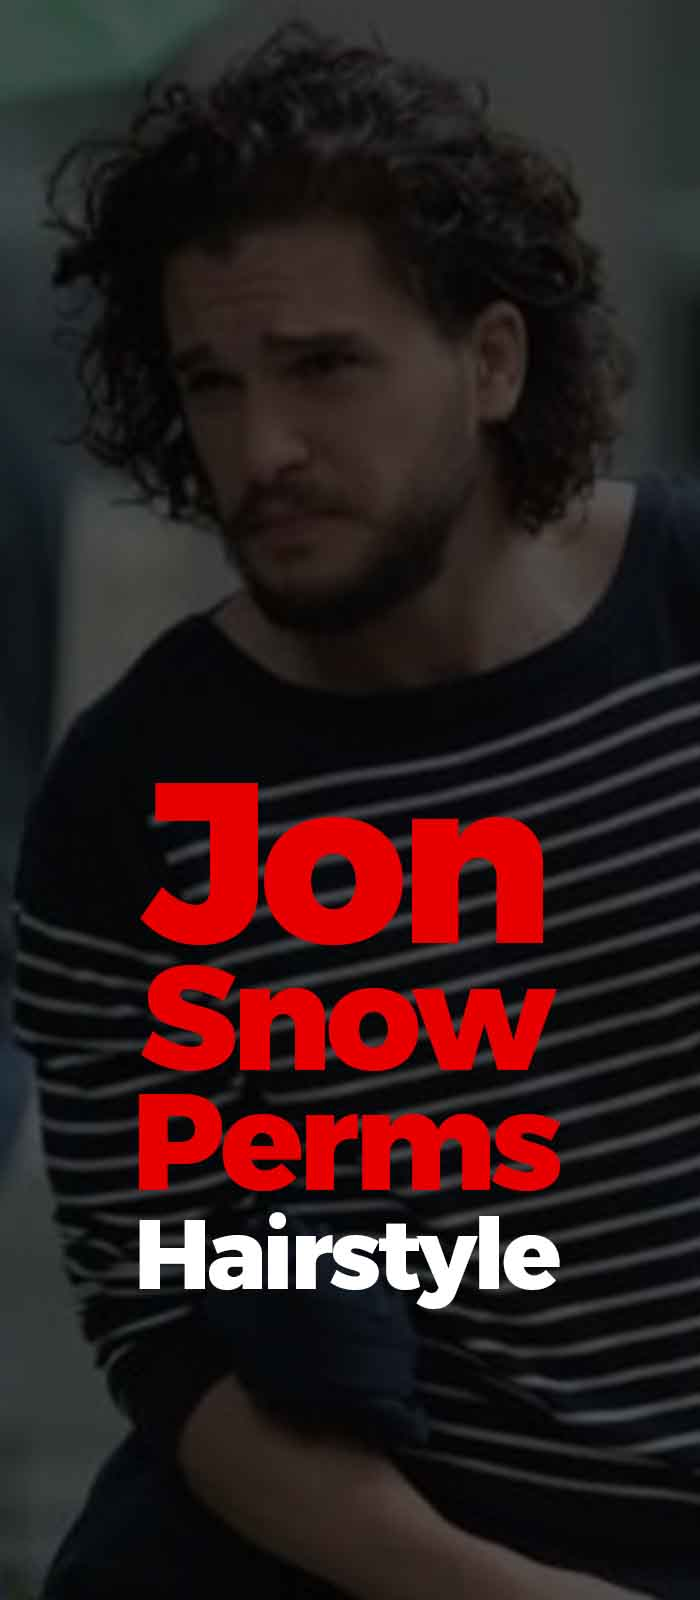 Jon Snow Perms Hairstyles!